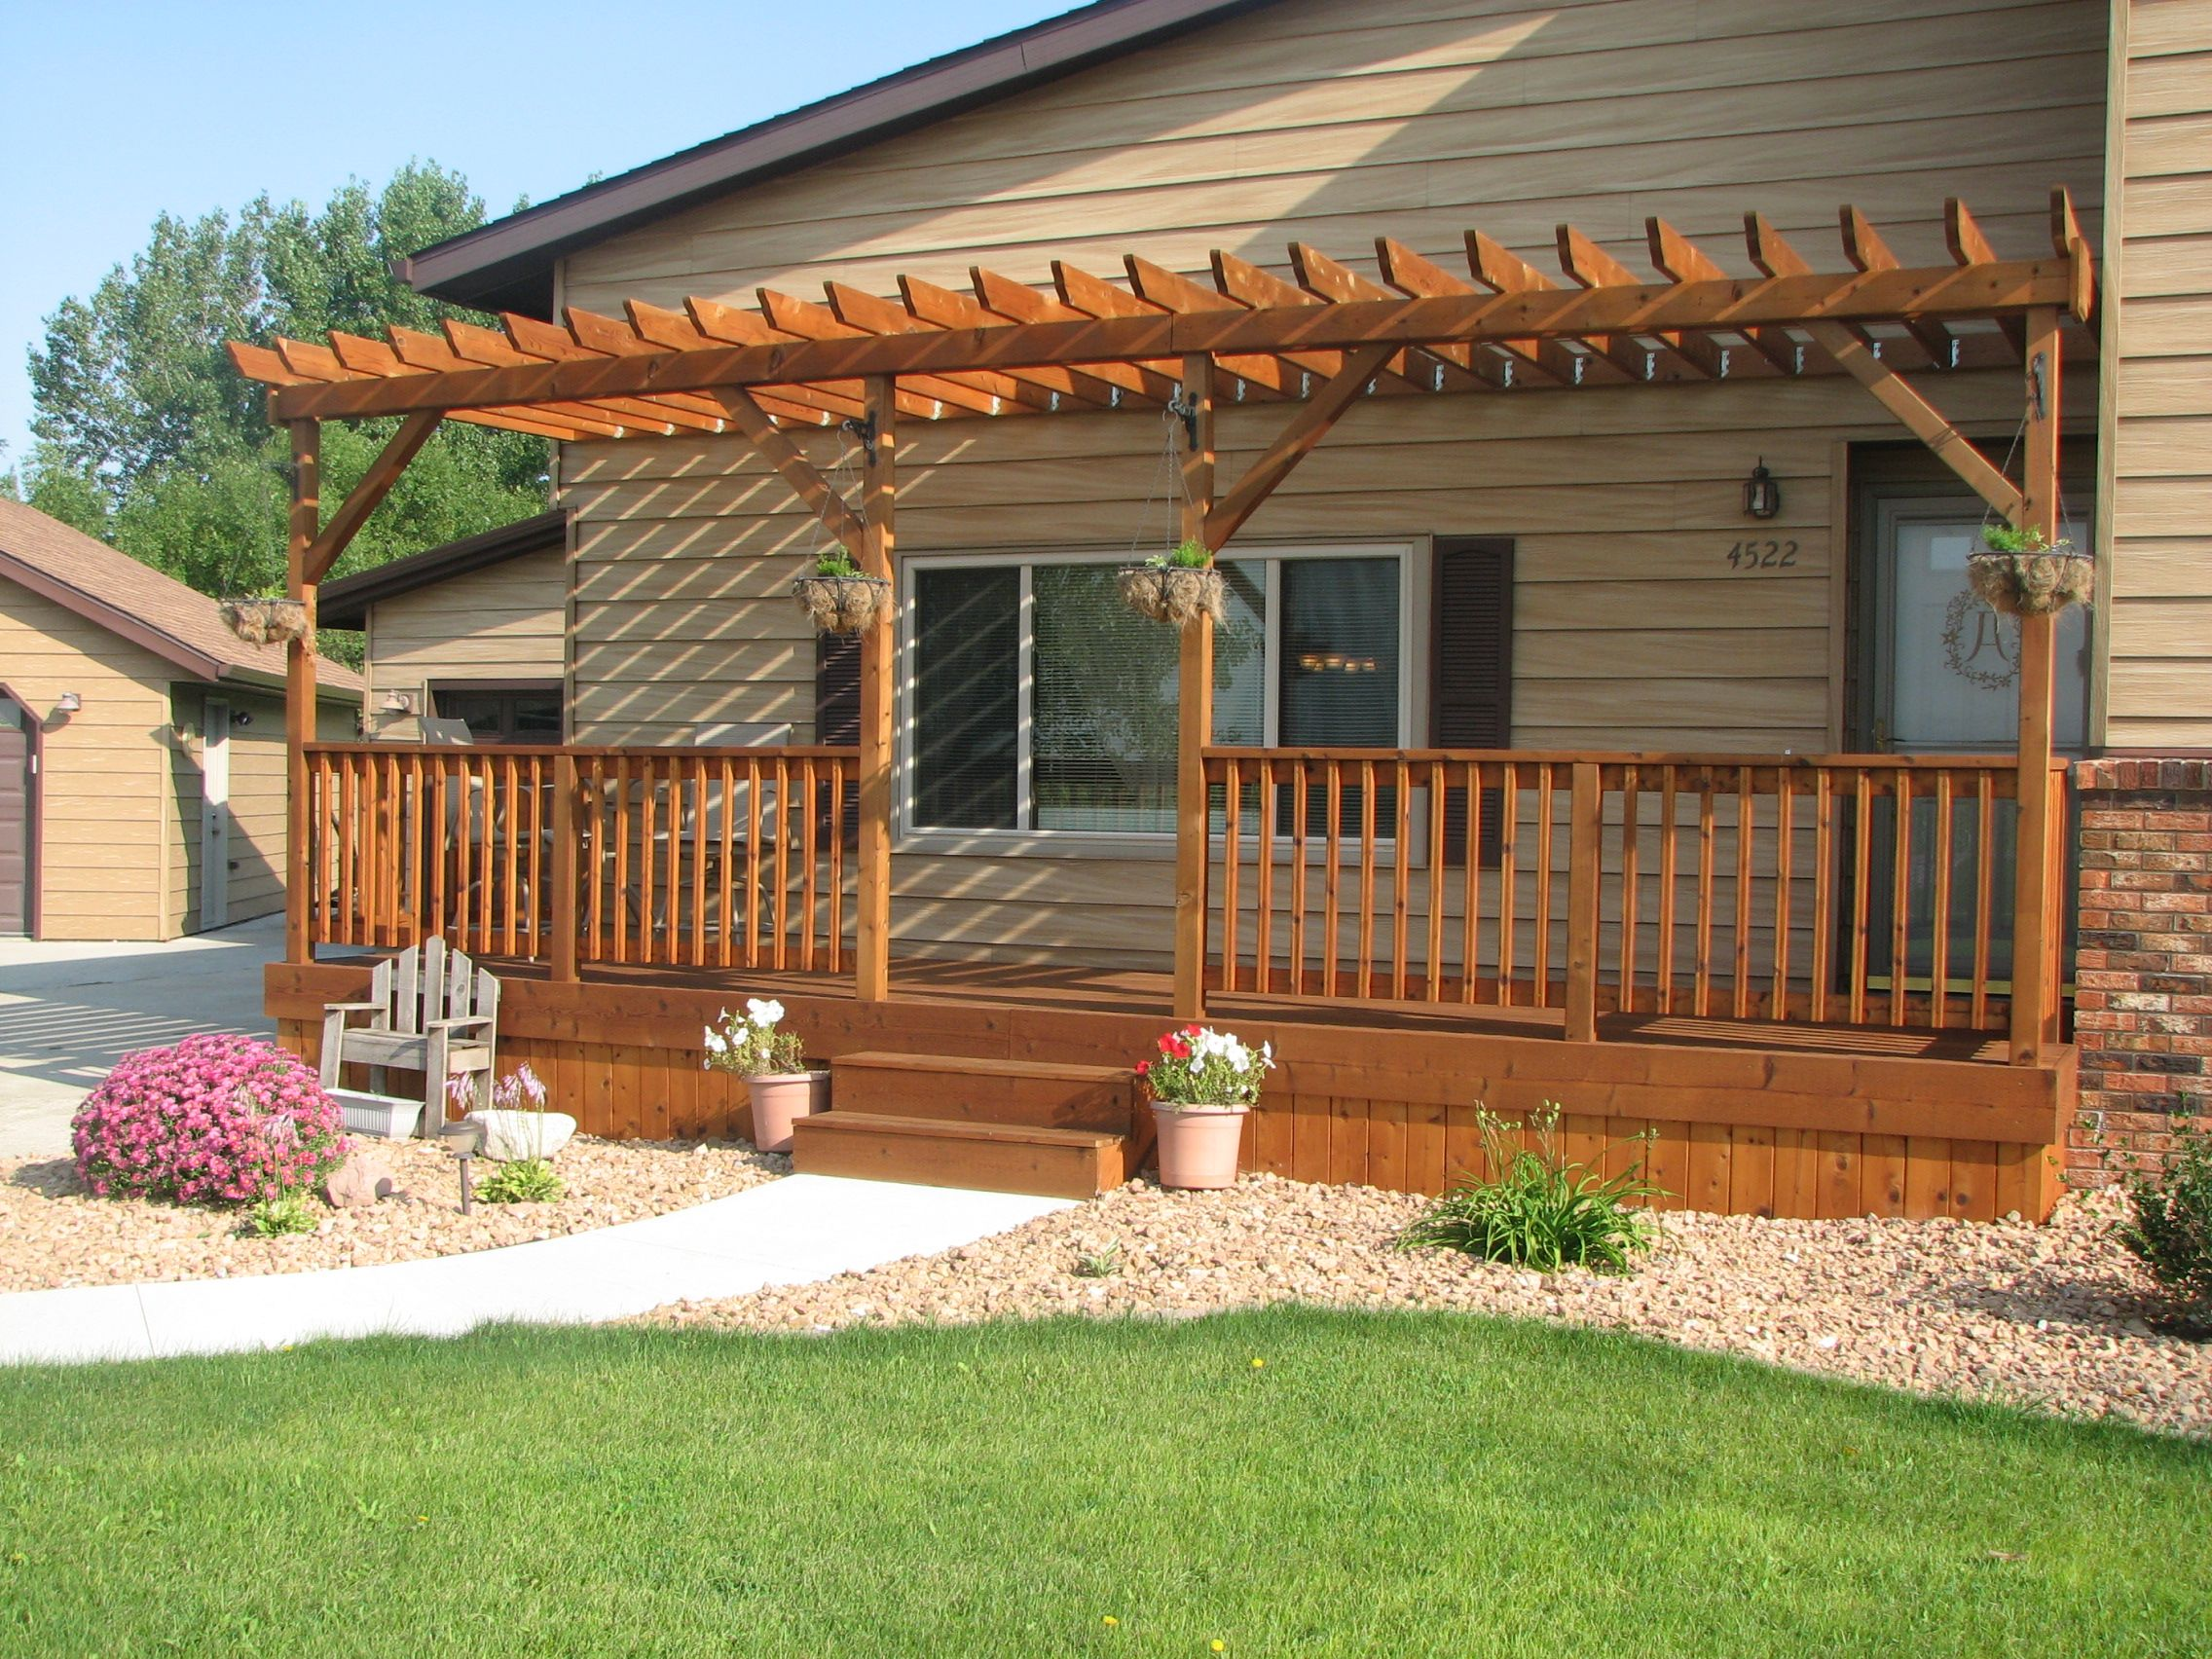 Dreaming is free front porch pergola pergola ideas and for Front porch plans free